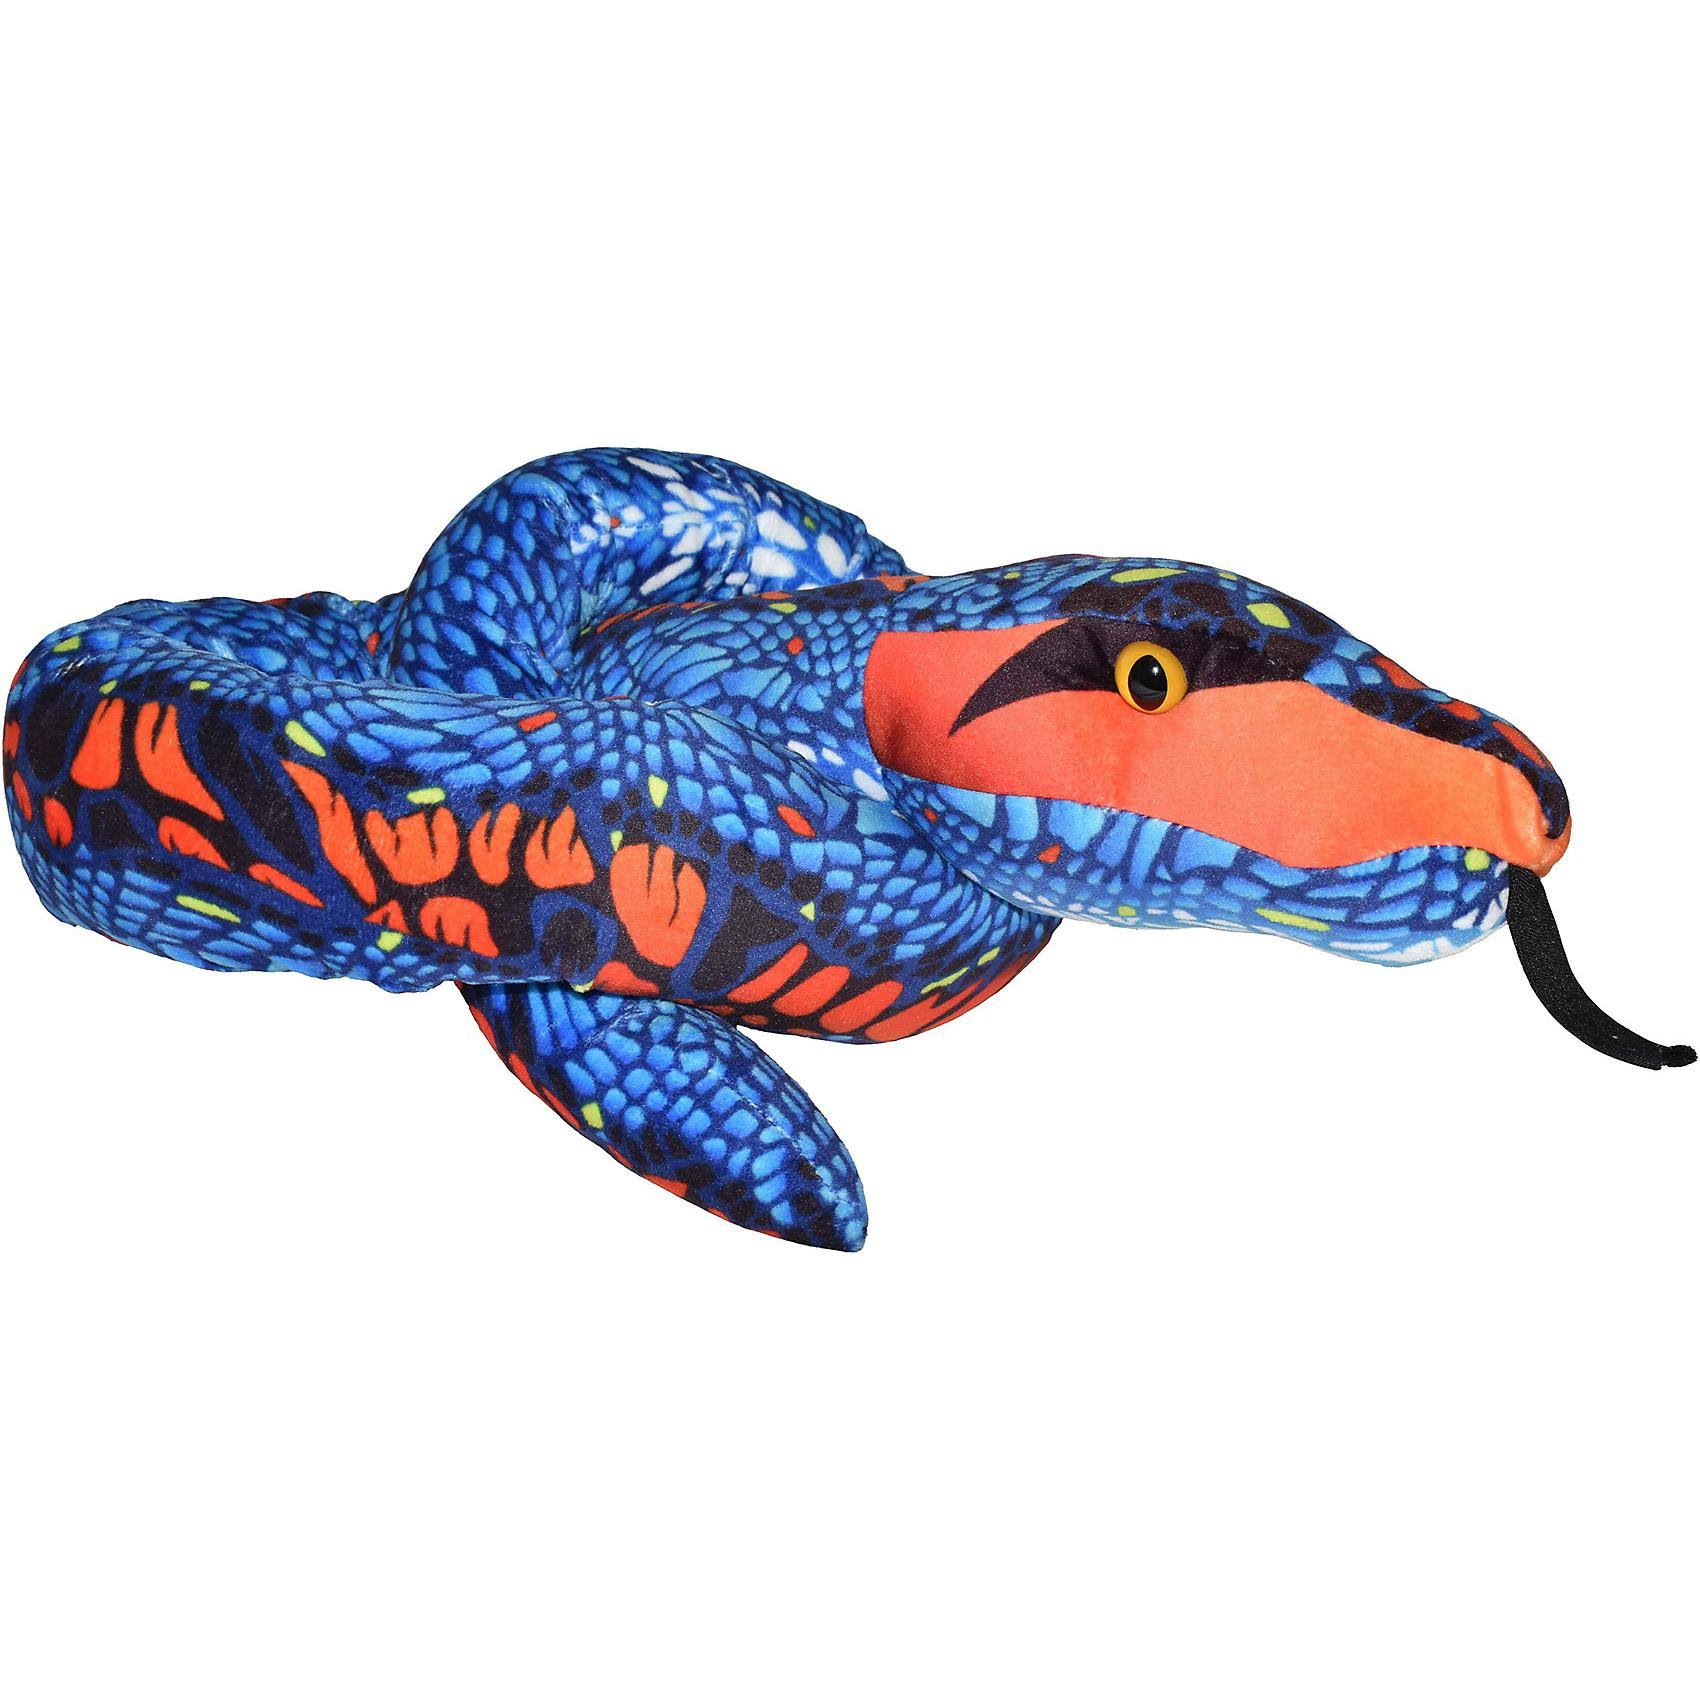 Orange Print 54 inch Plush Blue Snake by Wild Republic